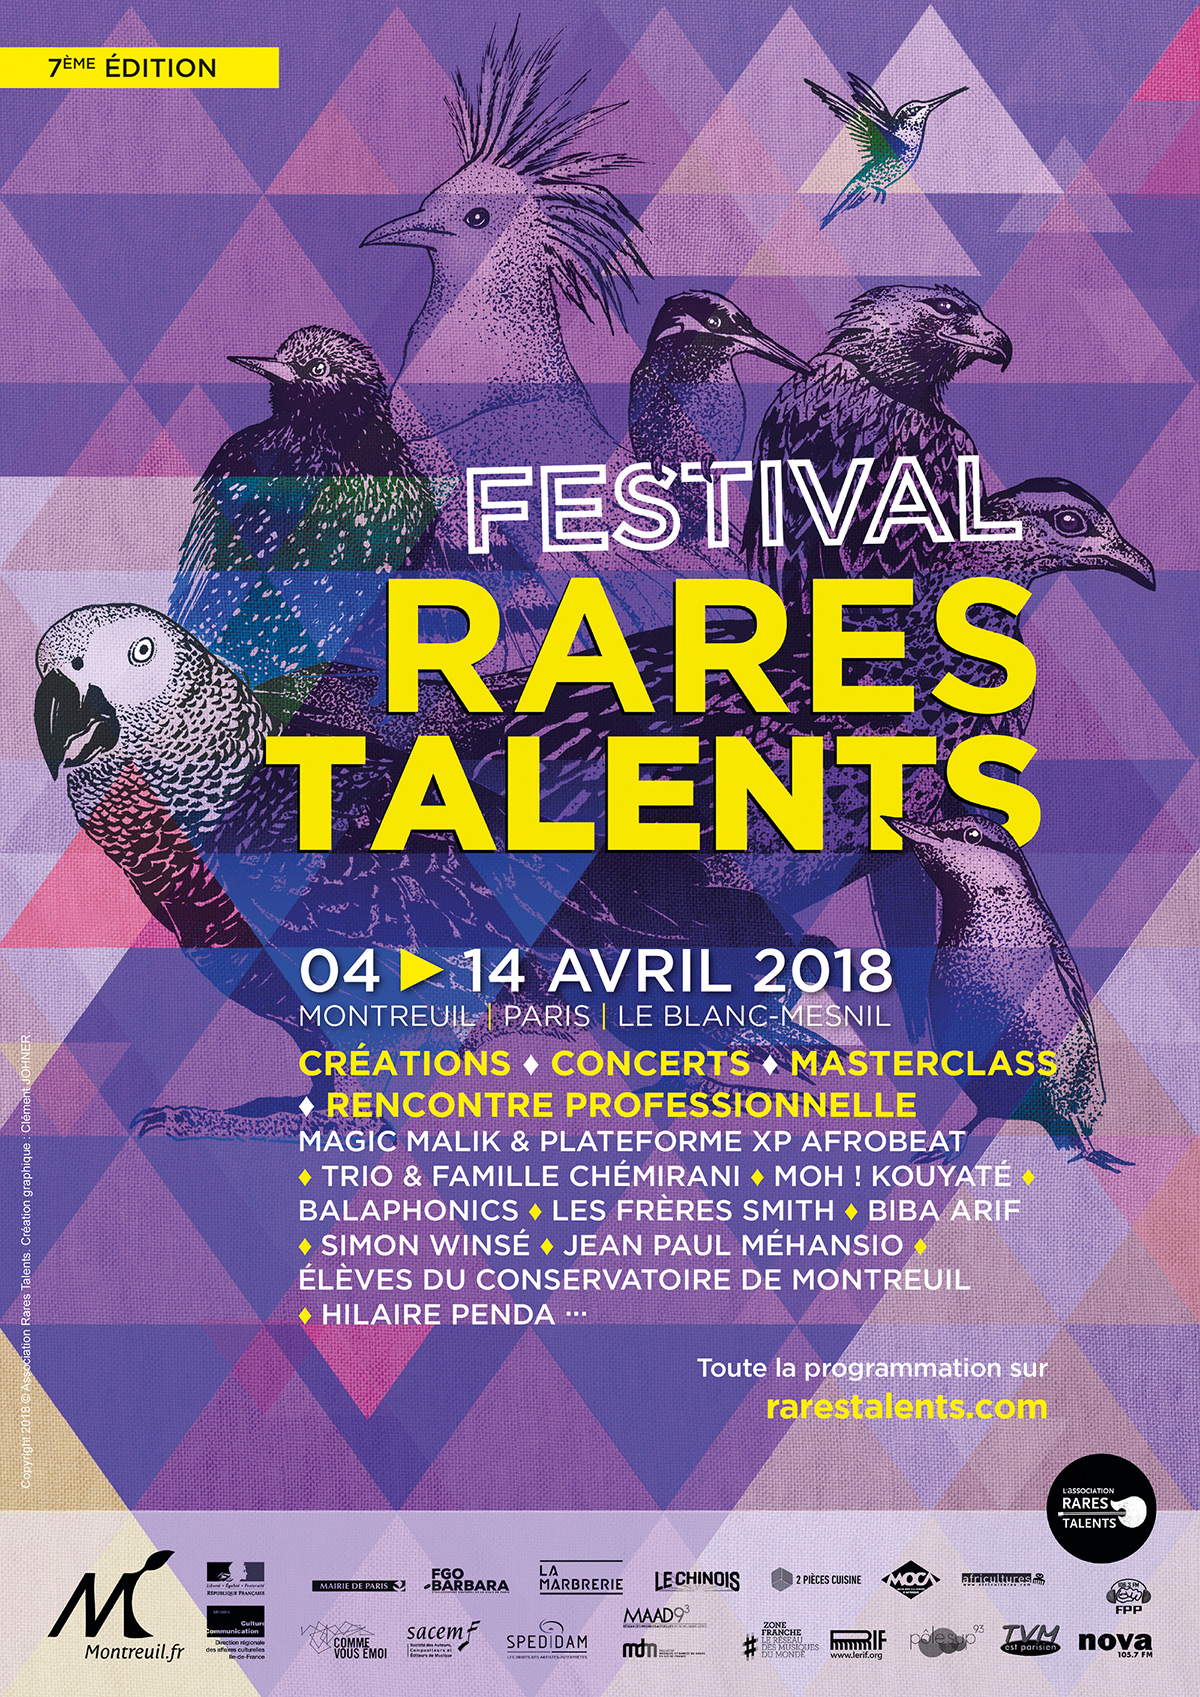 Festival Rares Talents 2017 © crédit photo : Florent Zarka